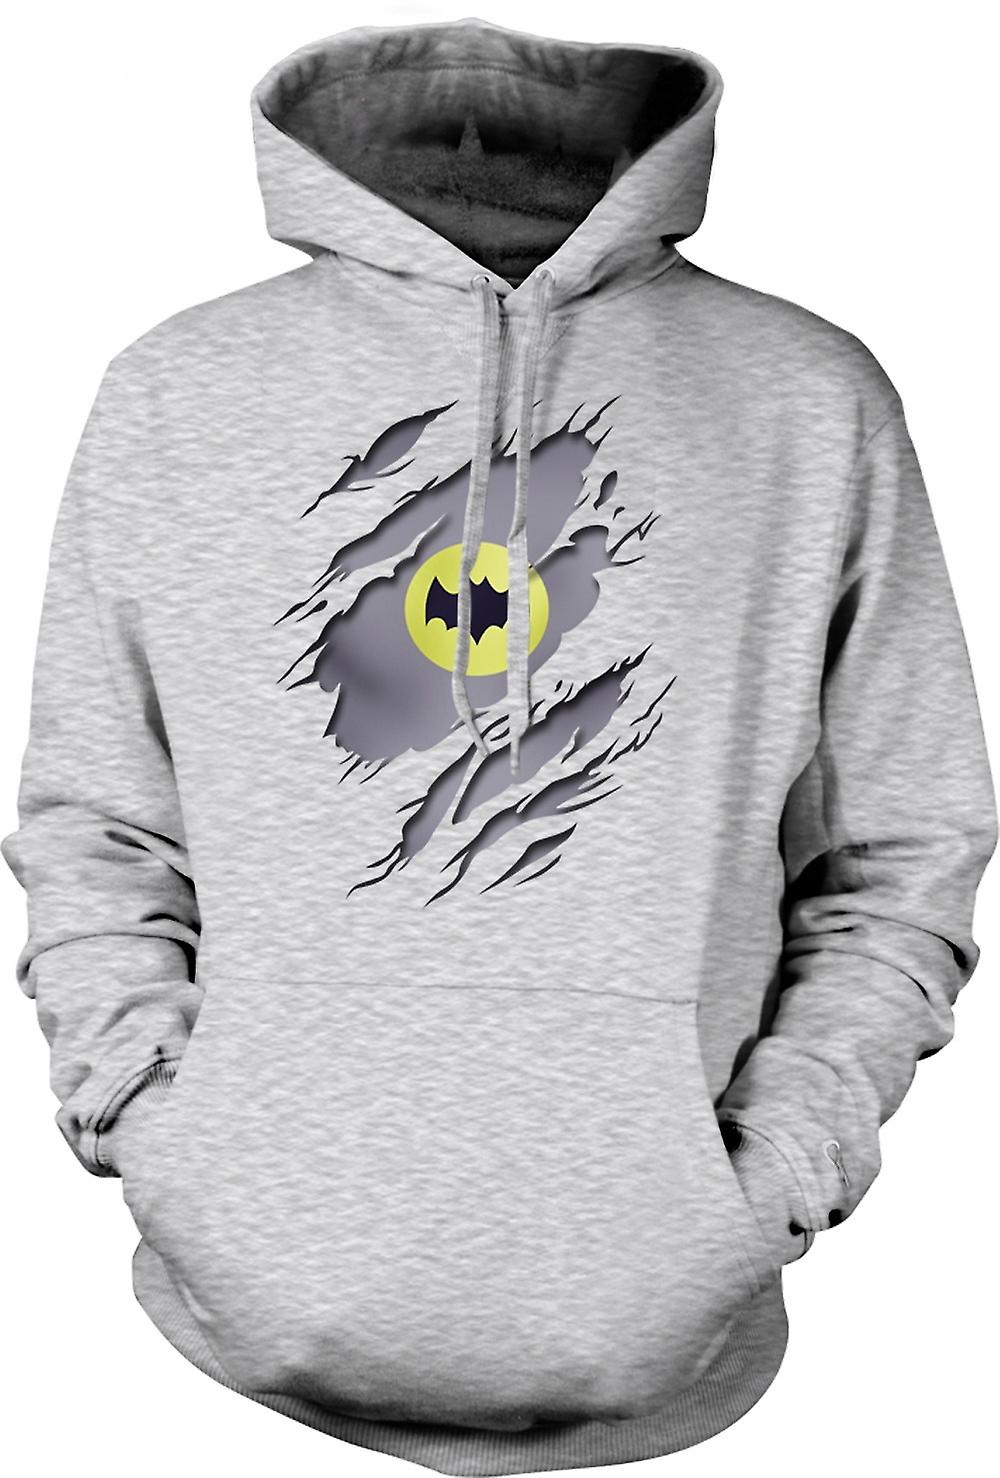 Mens-Hoodie - Batman unter Shirt Effekt - Film Superhero